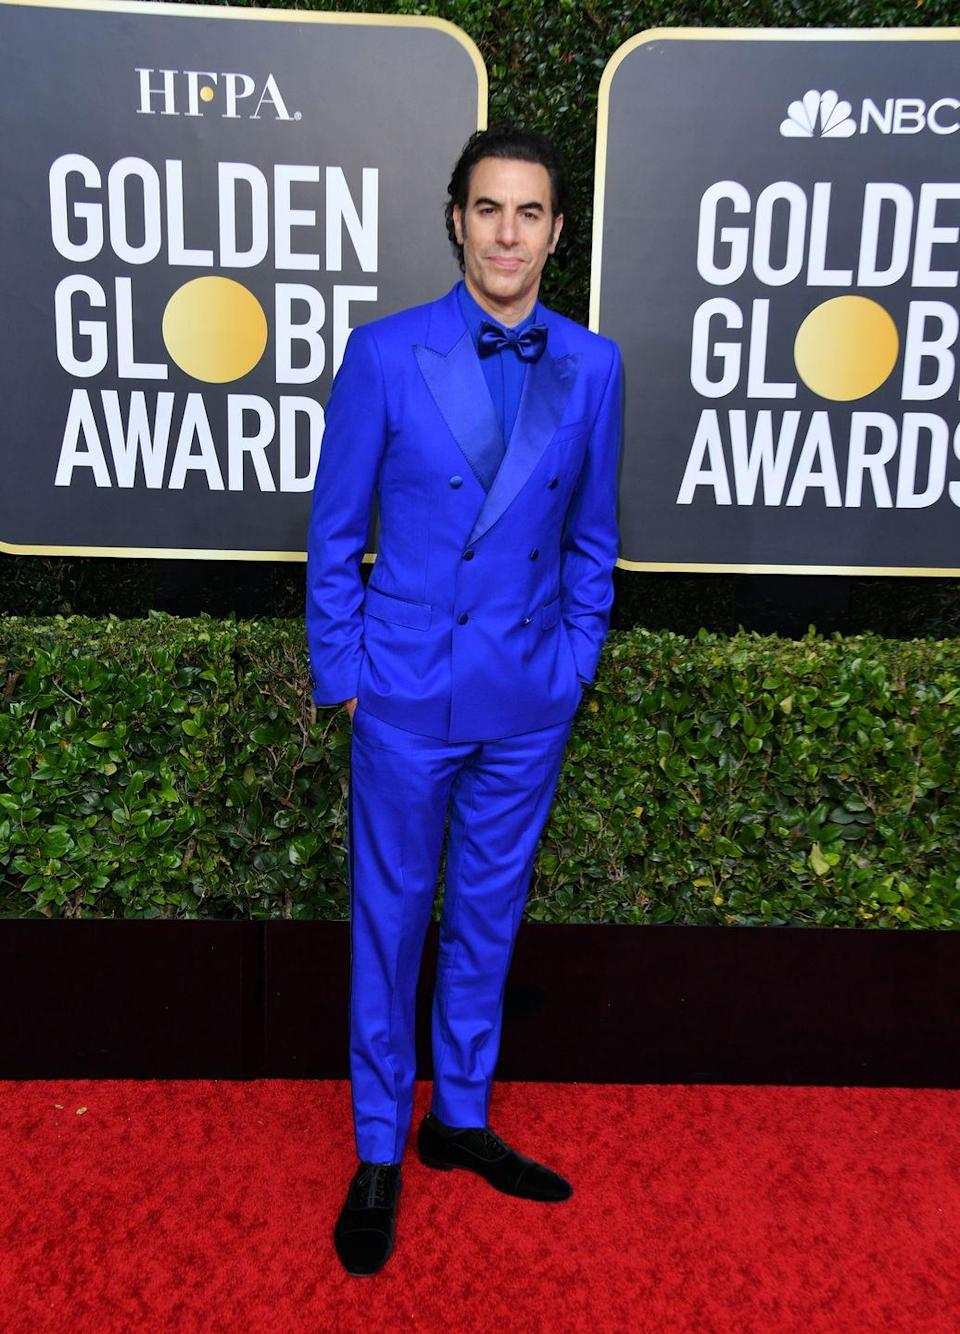 "<p>Height: 6'3""</p><p>Next to his wife Isla Fisher, he can look like a giant. But now I'm thinking it might just be anybody he stands next to...</p>"